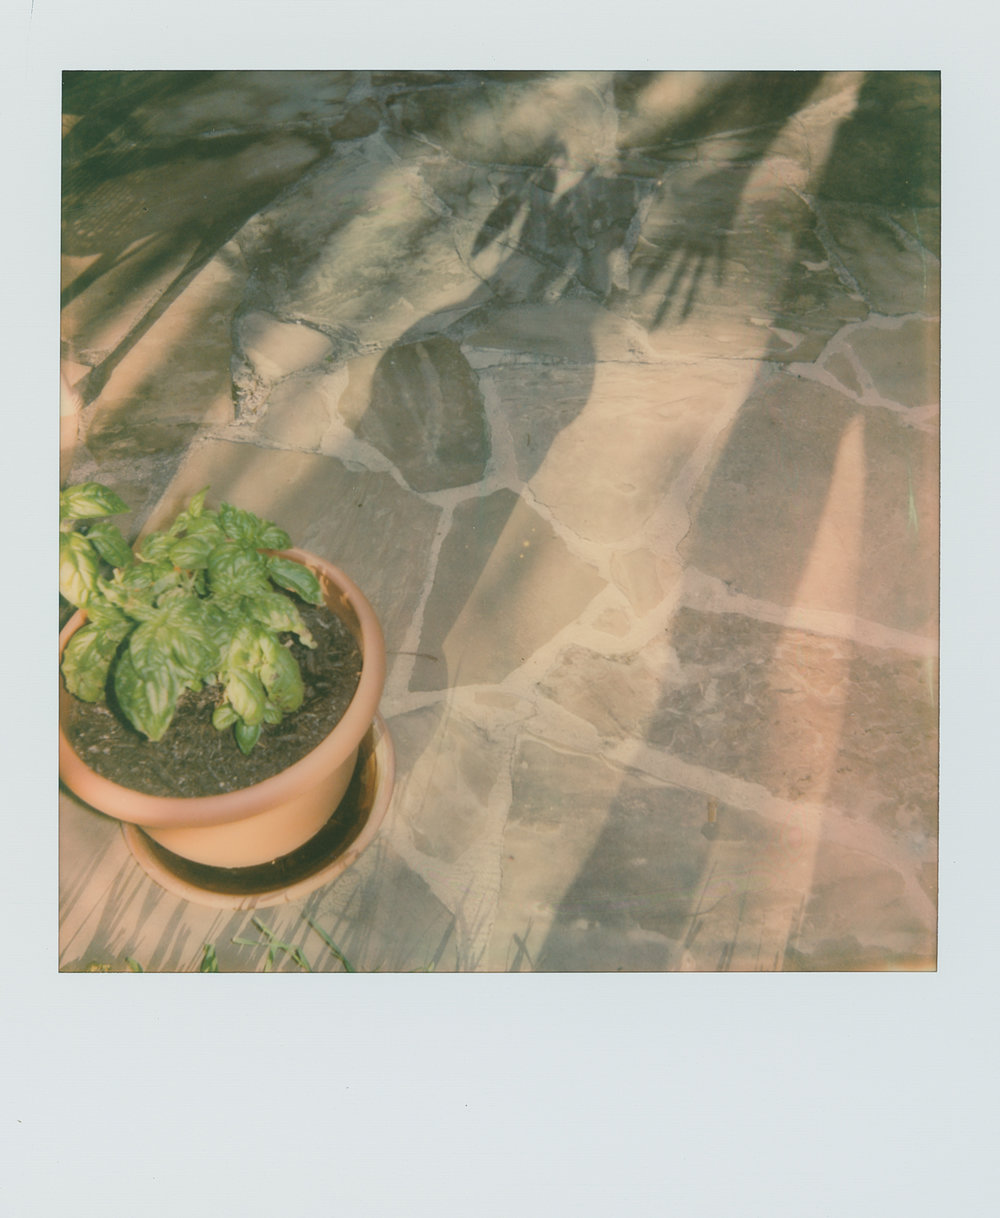 pola week shadow gardener (1 of 1).jpg